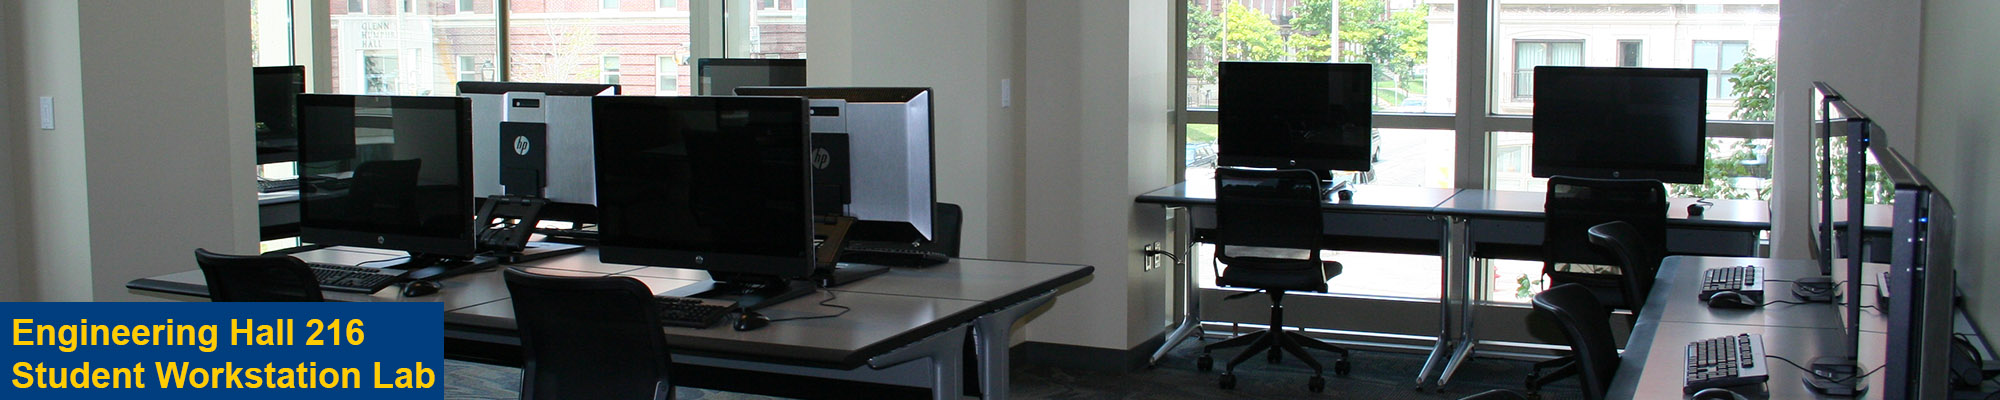 Engineering Hall Computer Lab